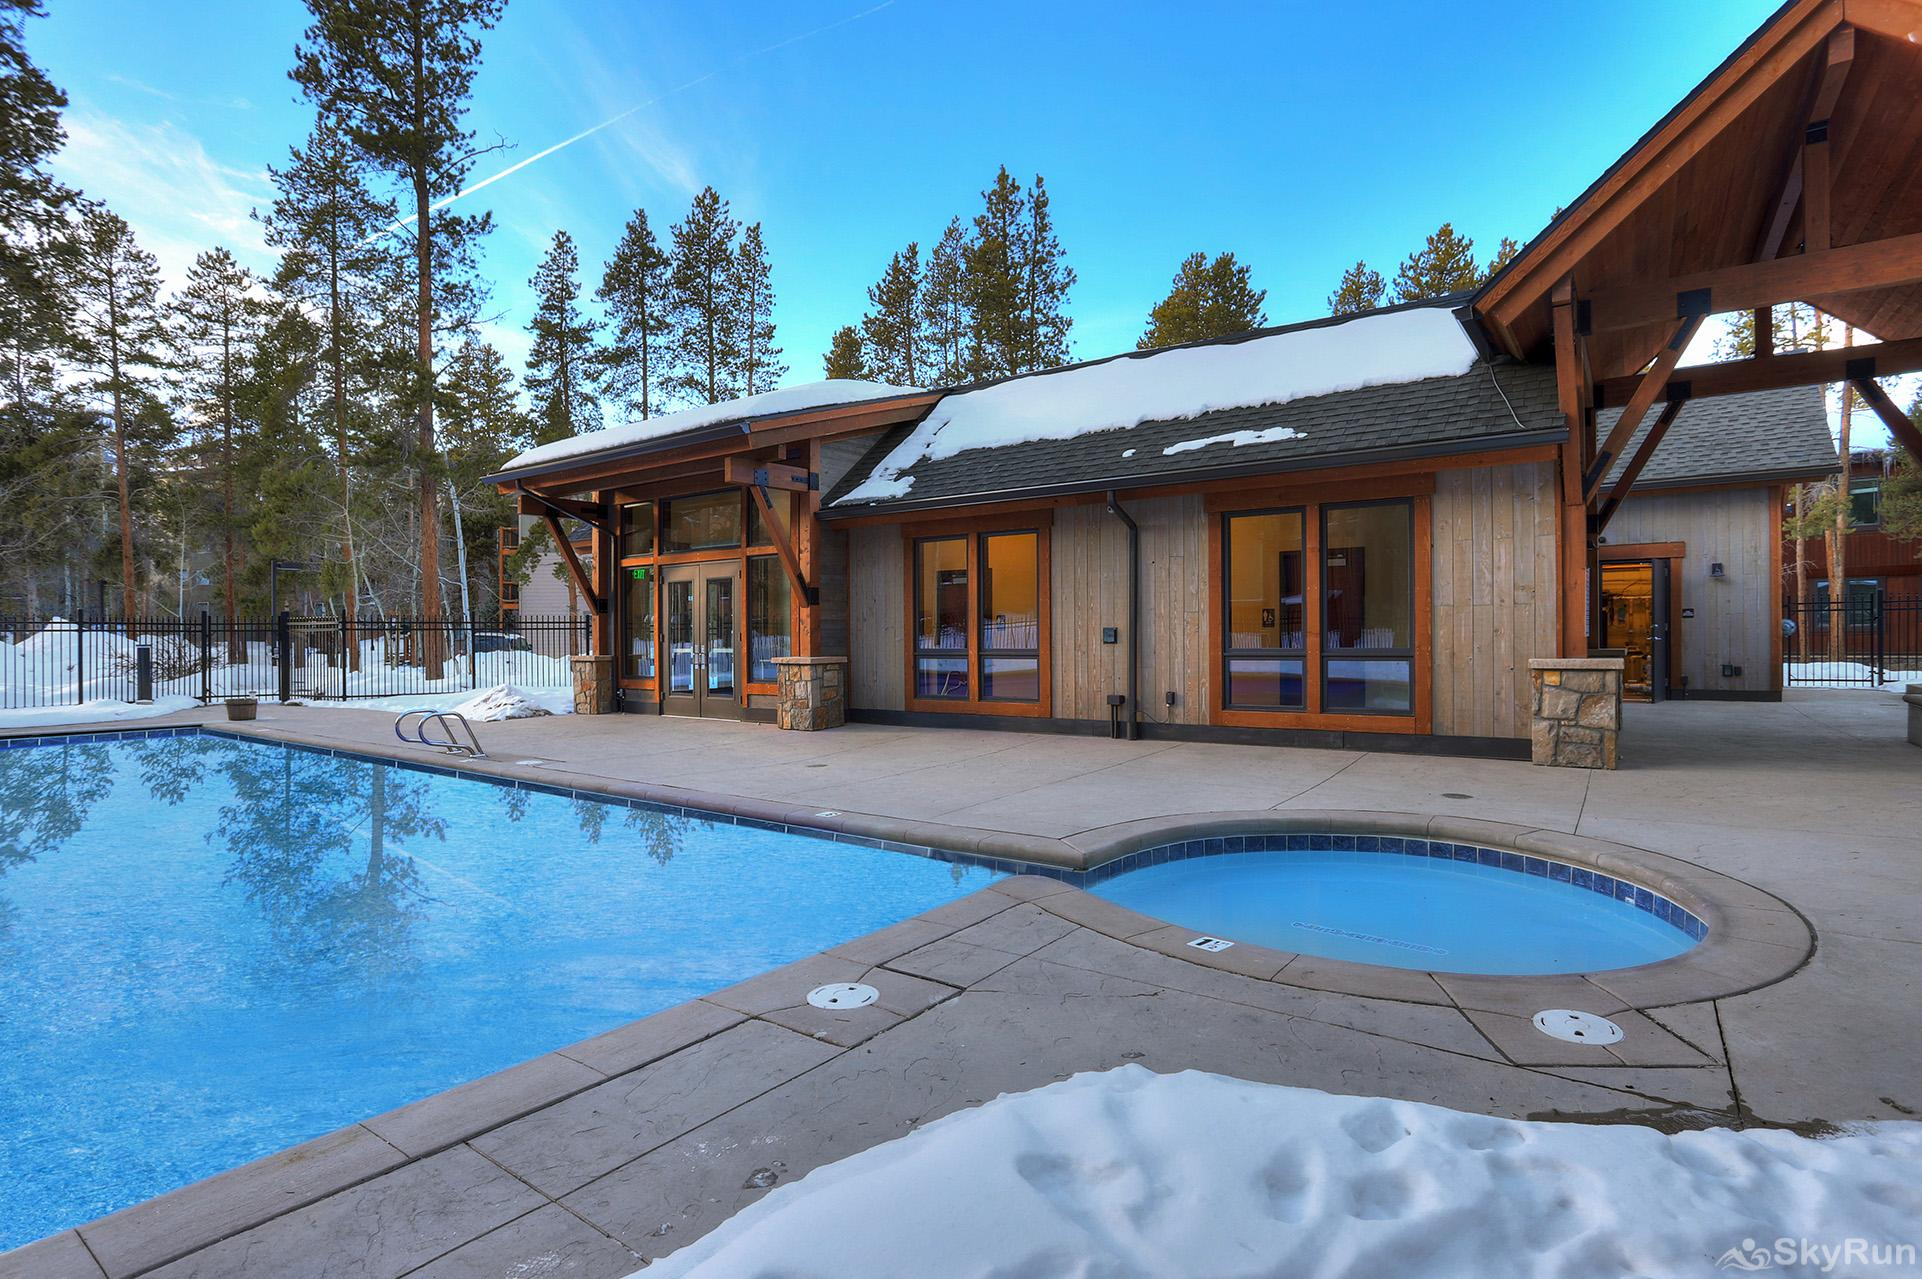 The Lift C112 Guests enjoy access to the Columbine Pool & Hot Tub Complex